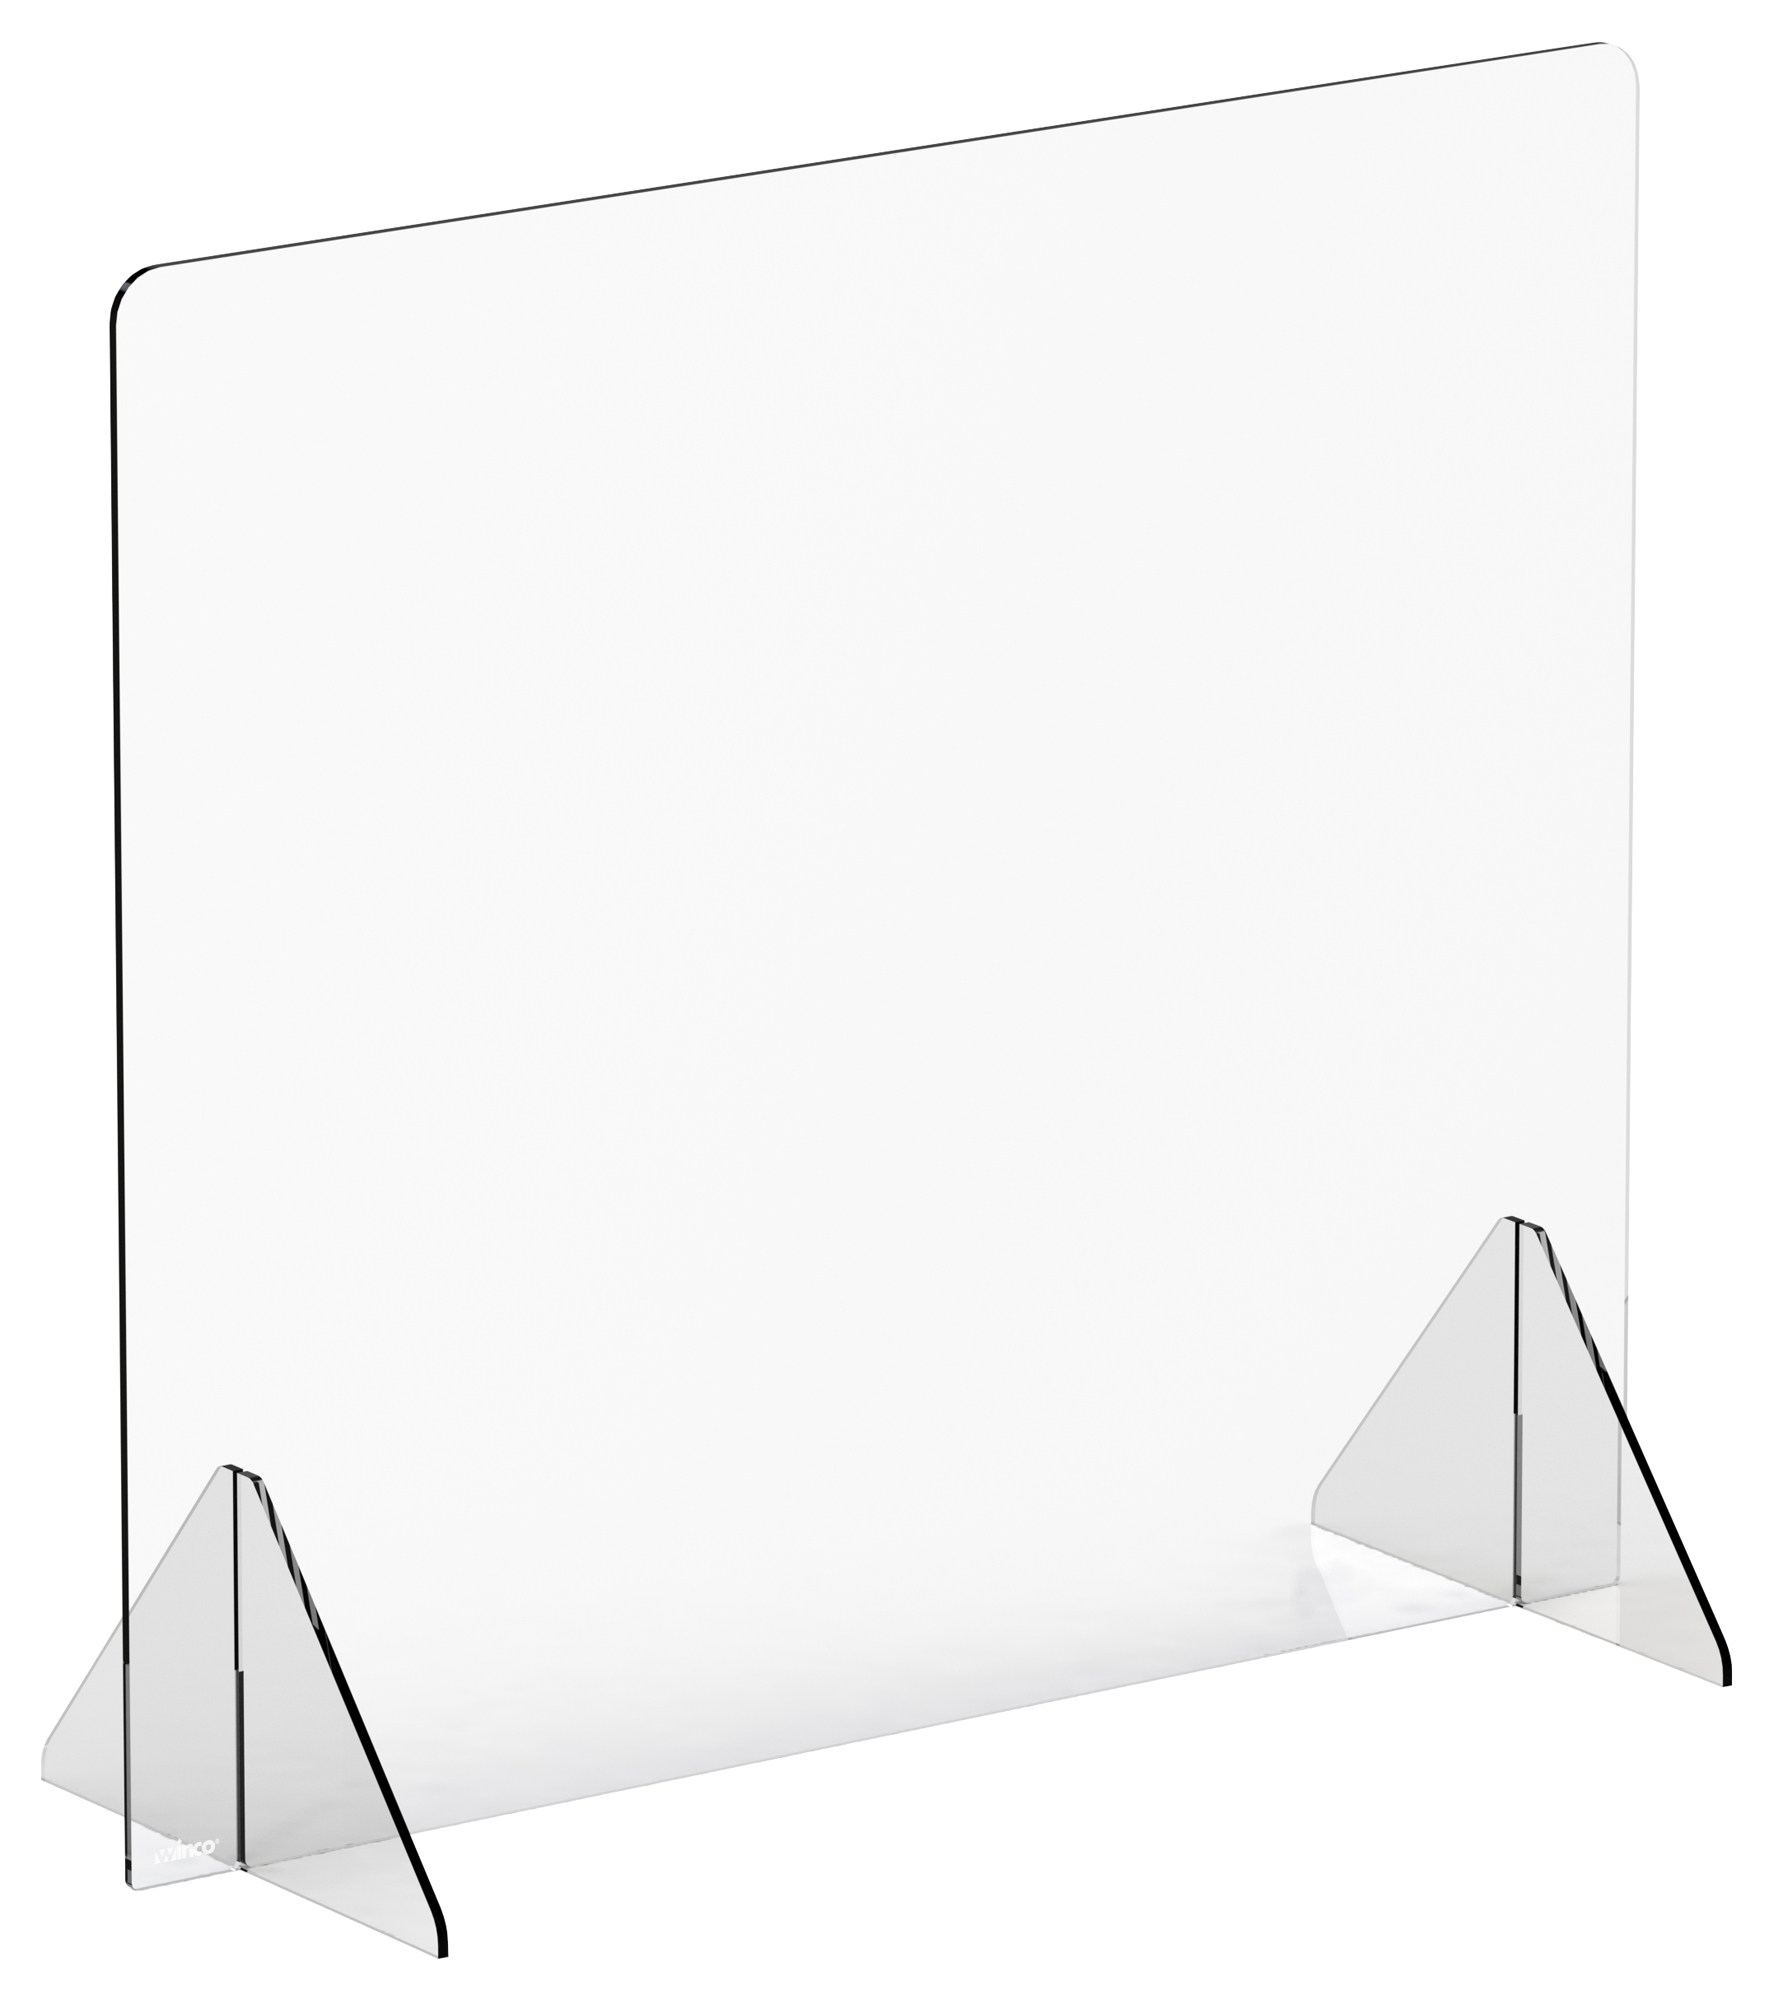 Winco ACSS-3632 clear safety shield